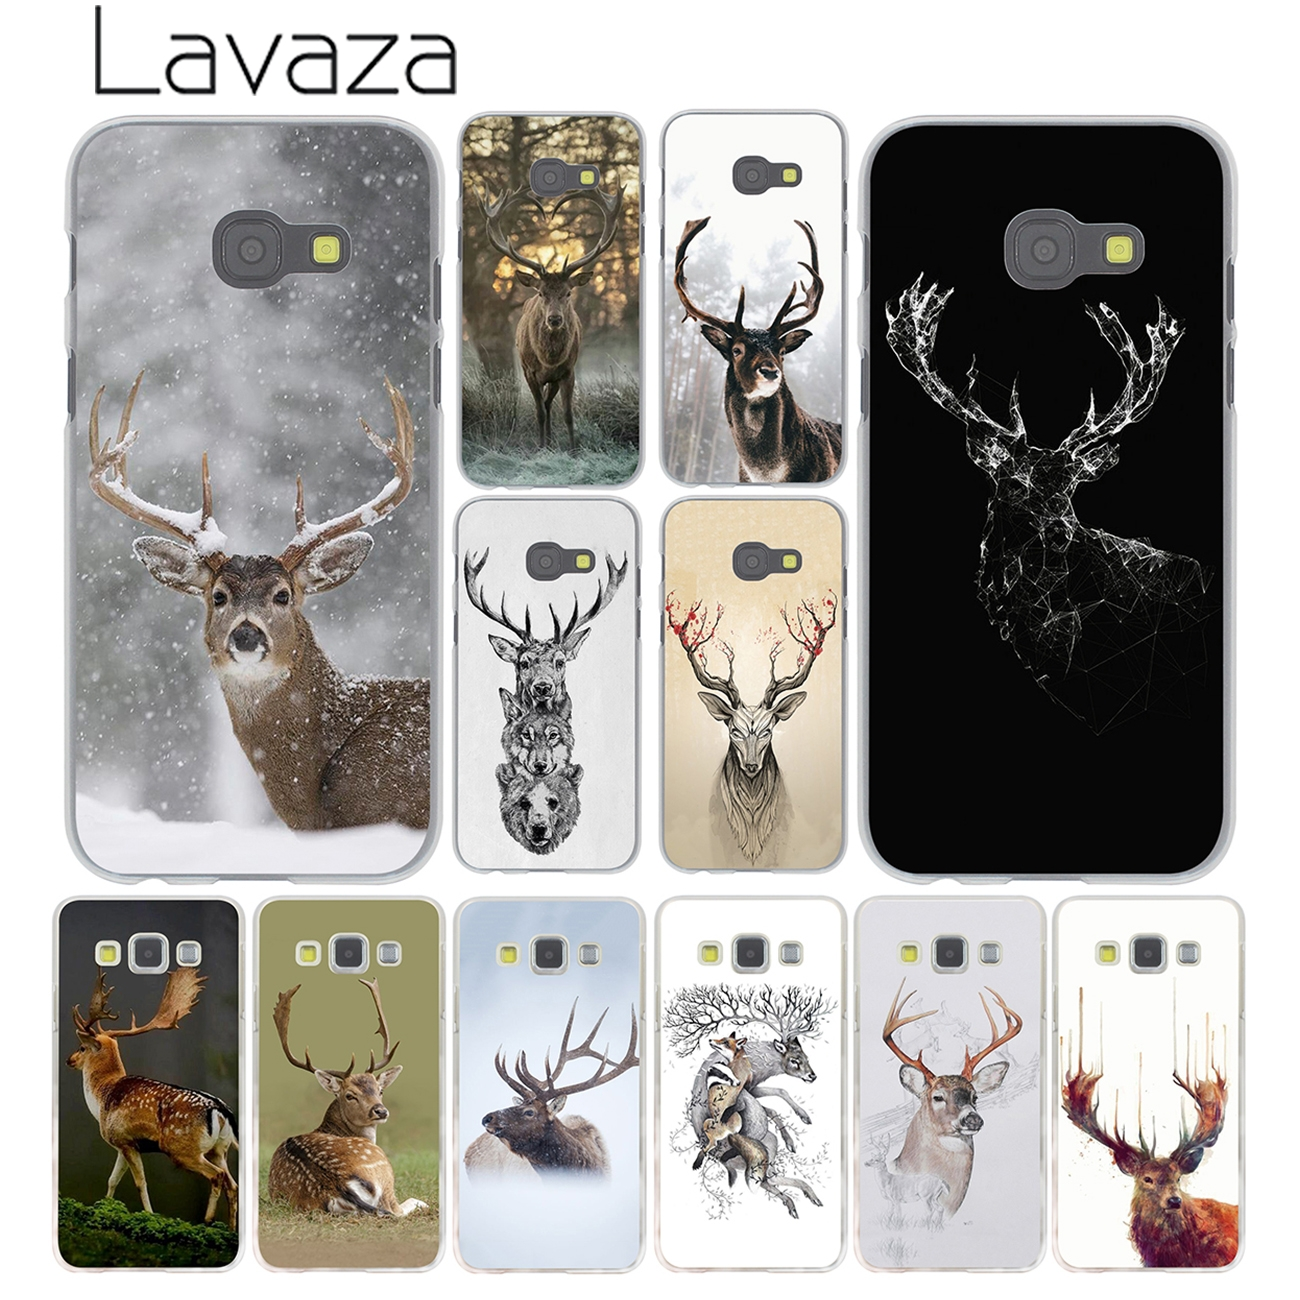 Lavaza Minimalist animal deer Minimalistic Case for Samsung Galaxy A3 A7 A8 A5 2015 2016 2017 2018 Note 8 5 4 3 Grand Prime 2 ...